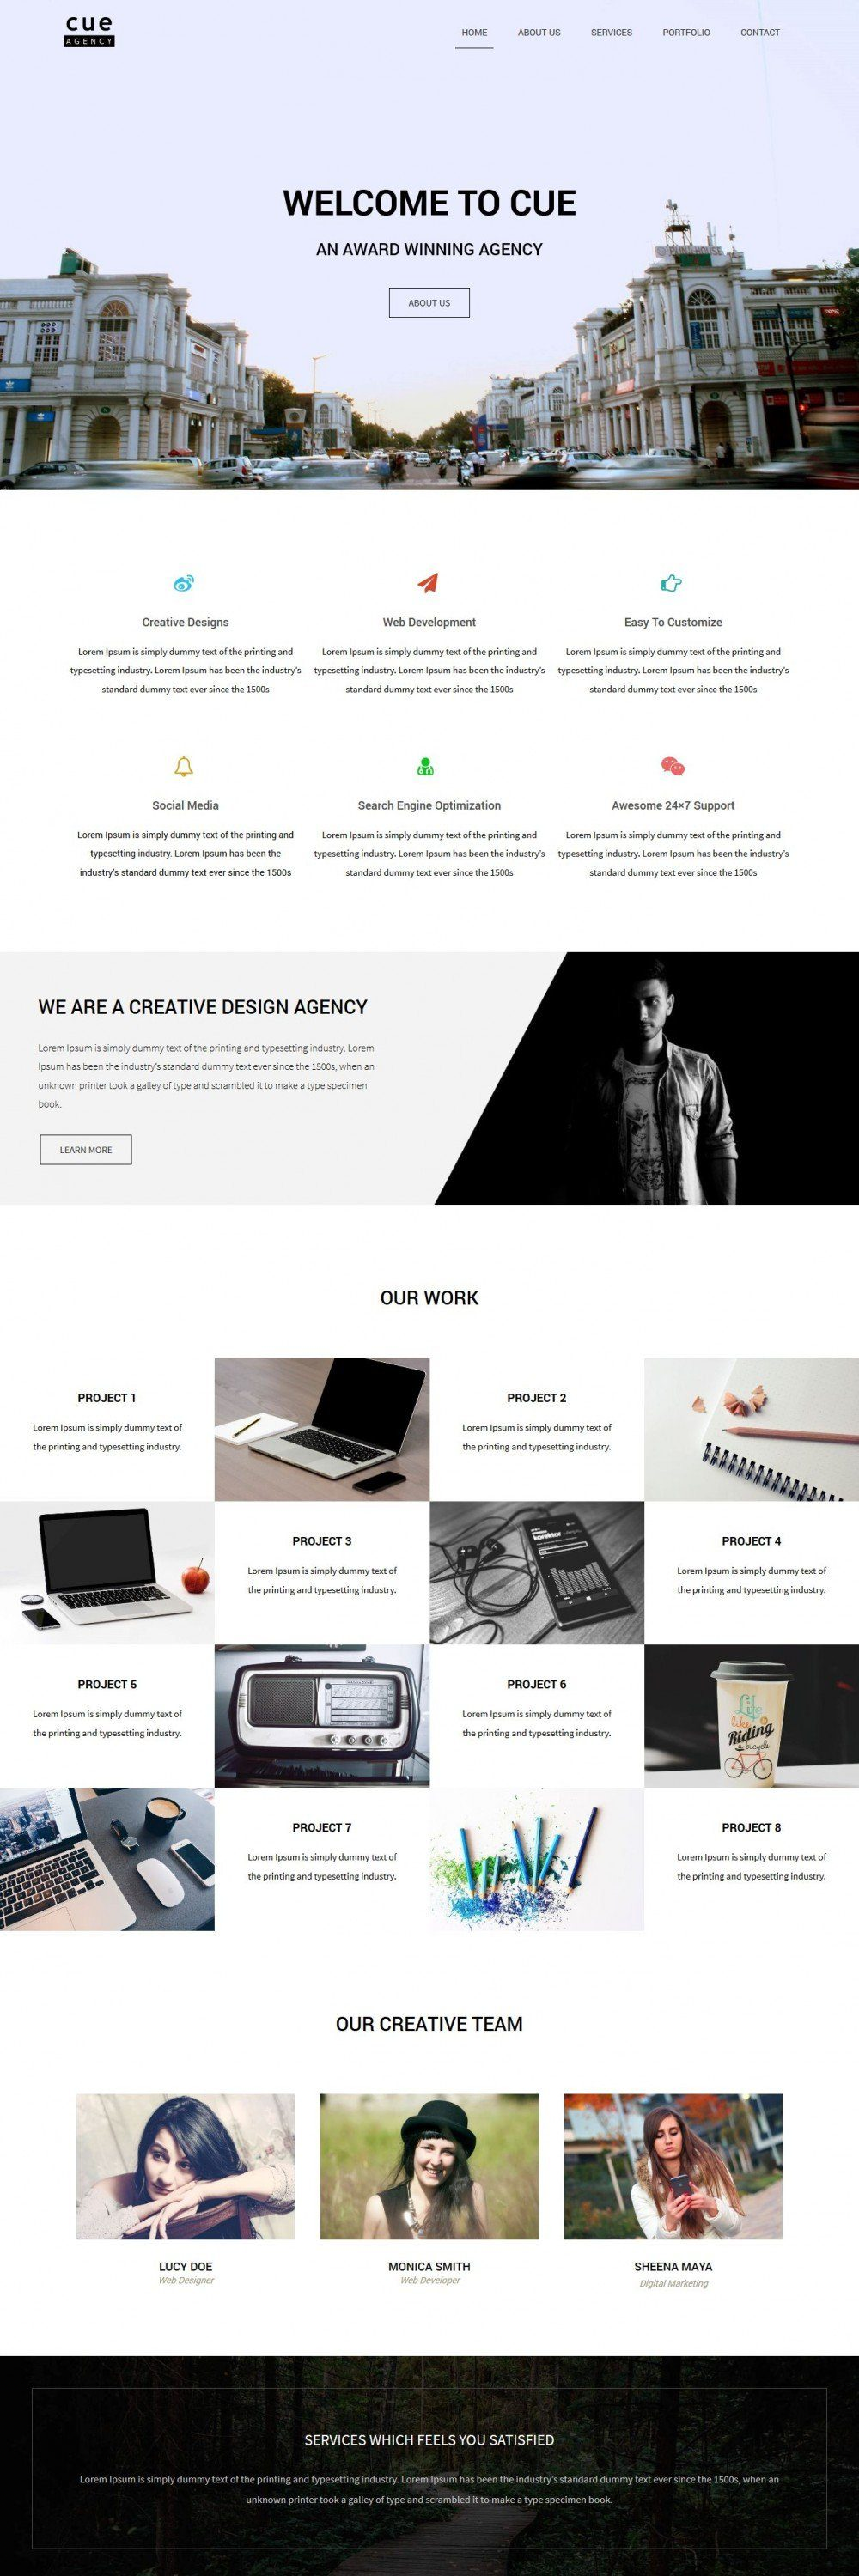 cue creative joomla template for web design agency